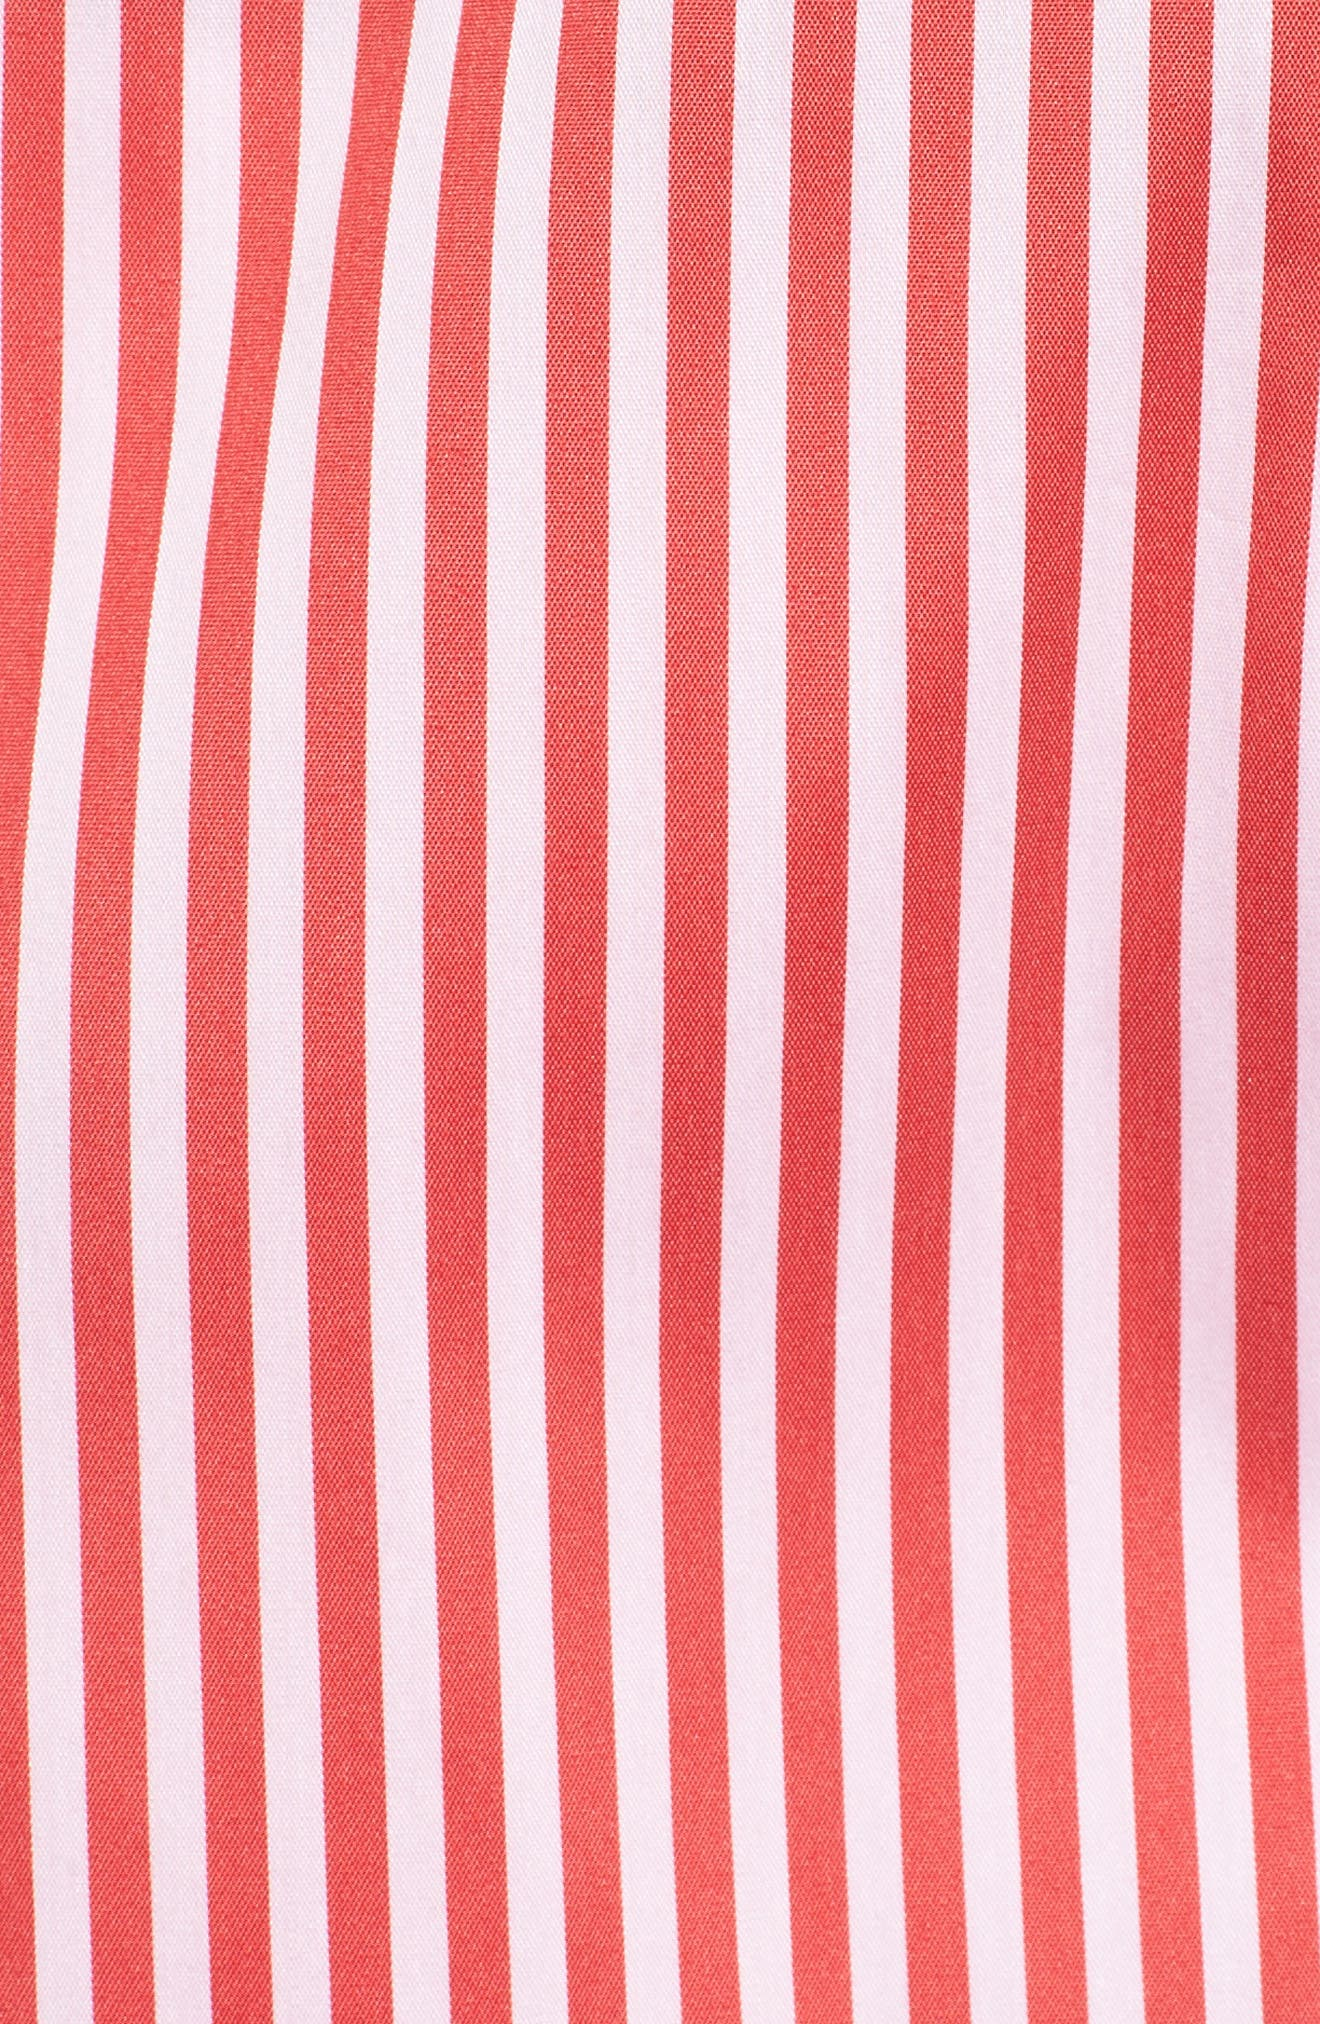 Stripe Smocked Corset Shirt,                             Alternate thumbnail 6, color,                             Red/ White Lucy Stripe